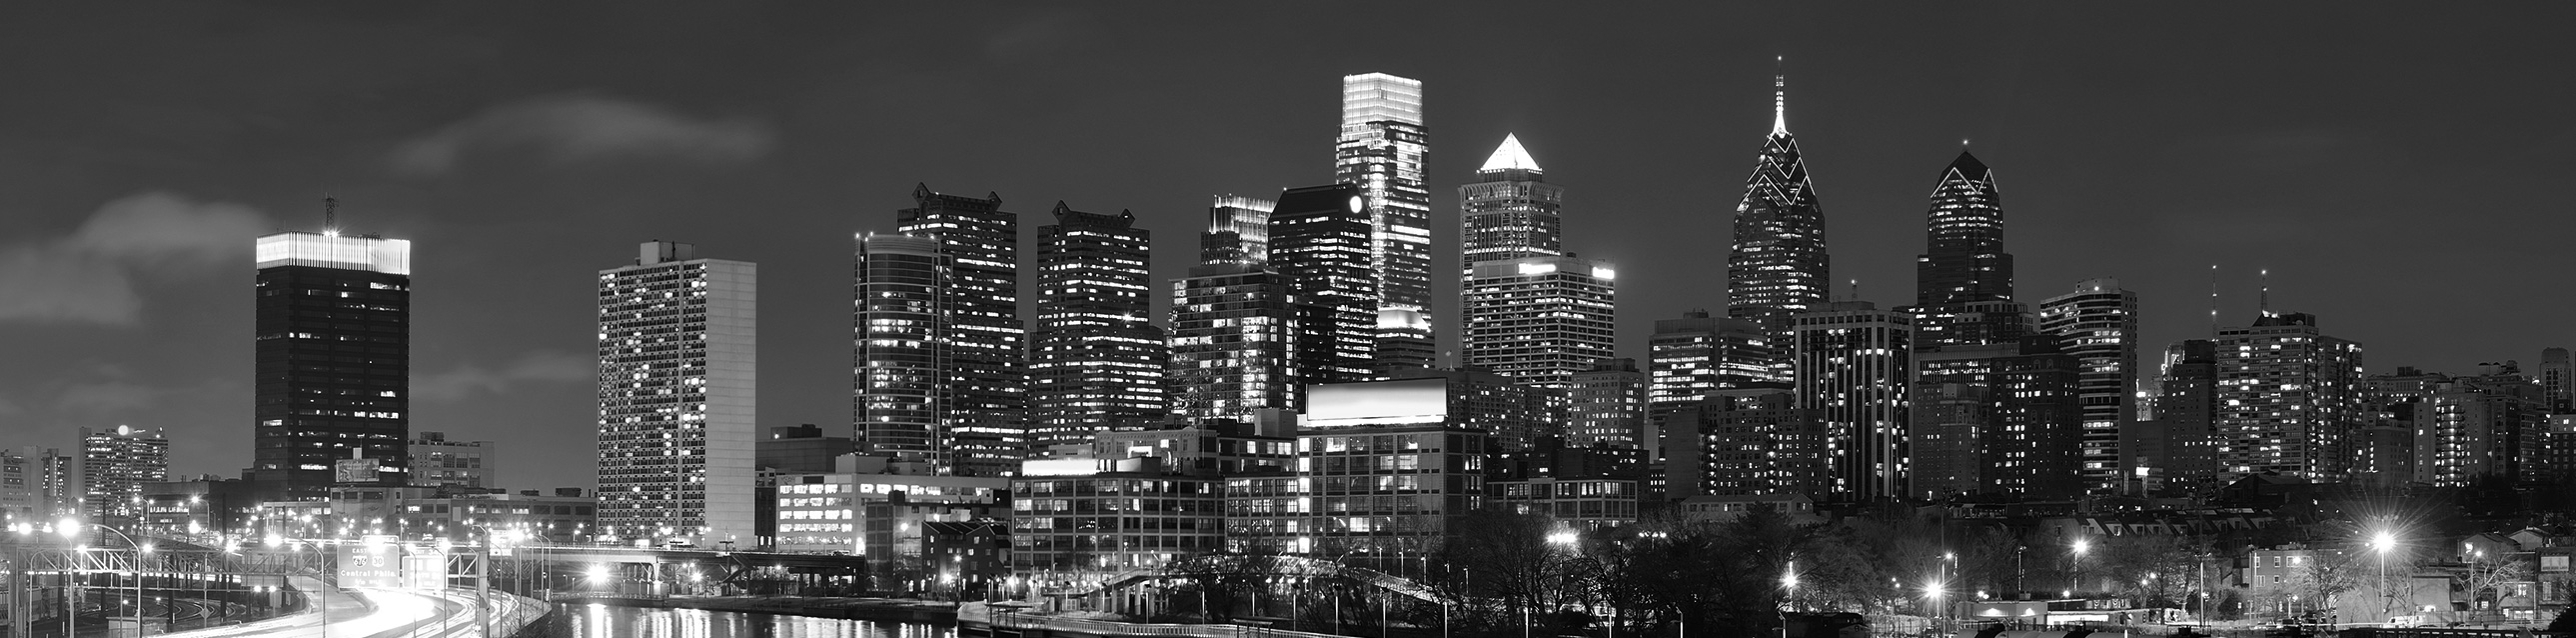 Philadelphia-skyline-at-night